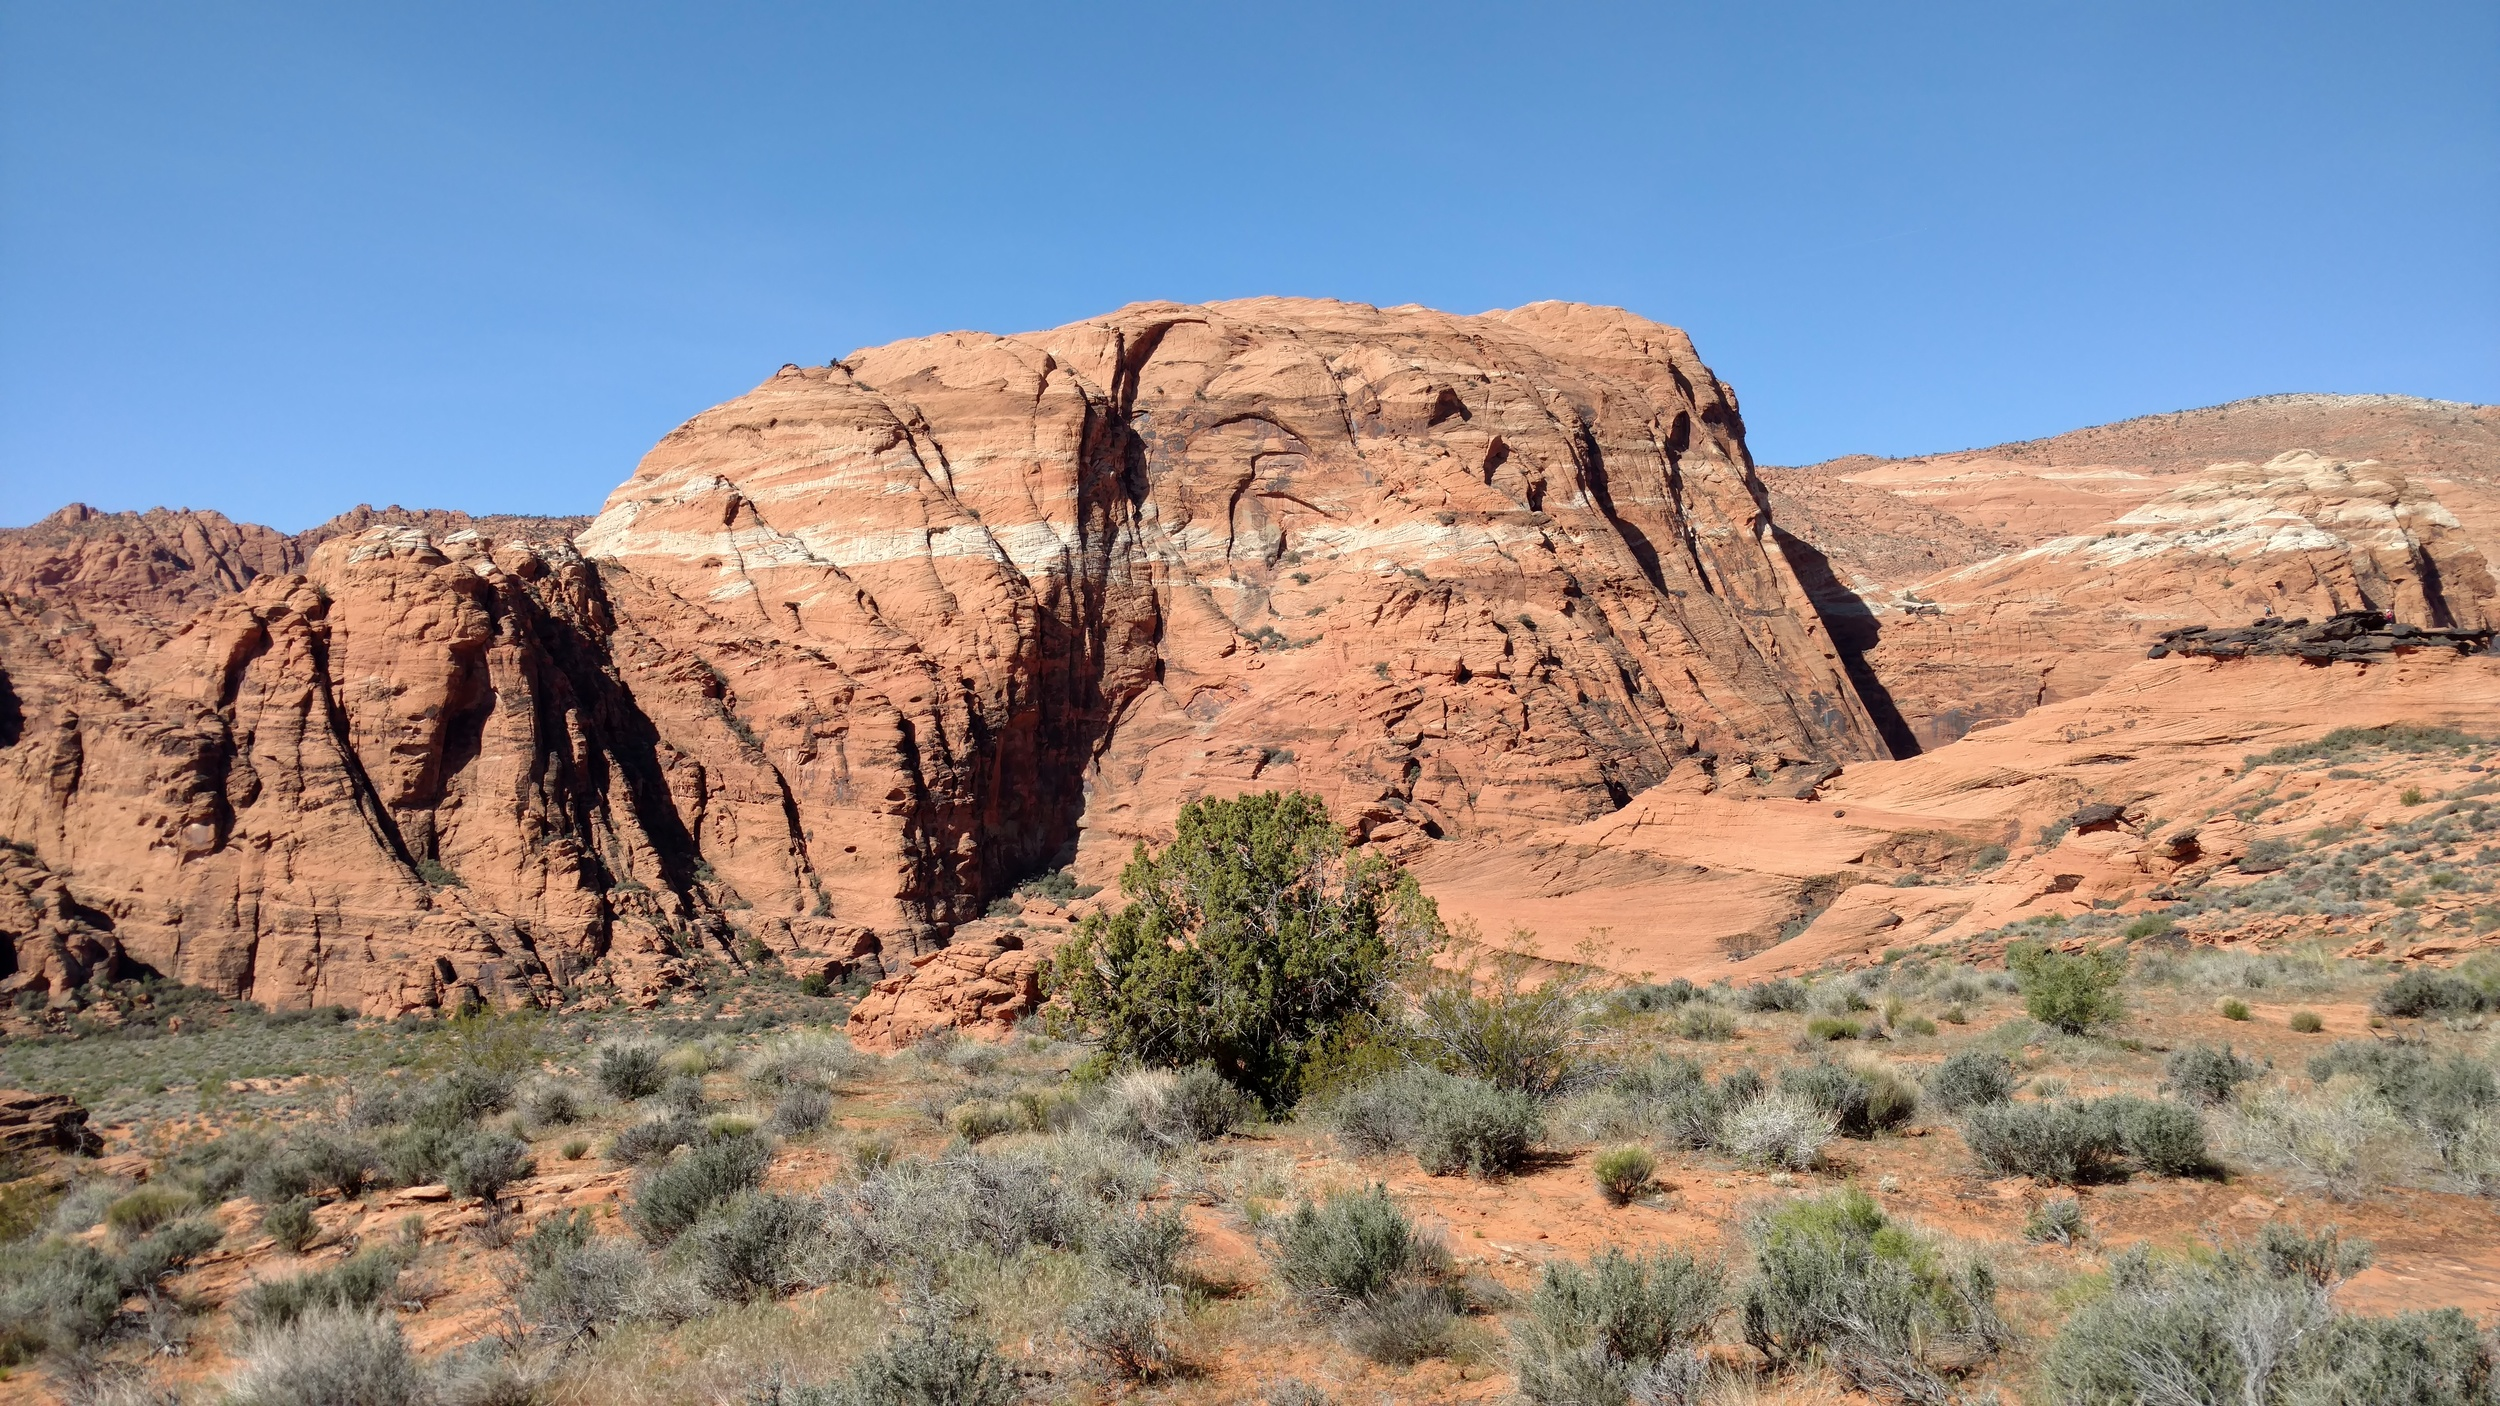 Pictograph Mountain as seen on approach near the junction of Three Ponds trail, Overlook, and Petrified Dunes trails.